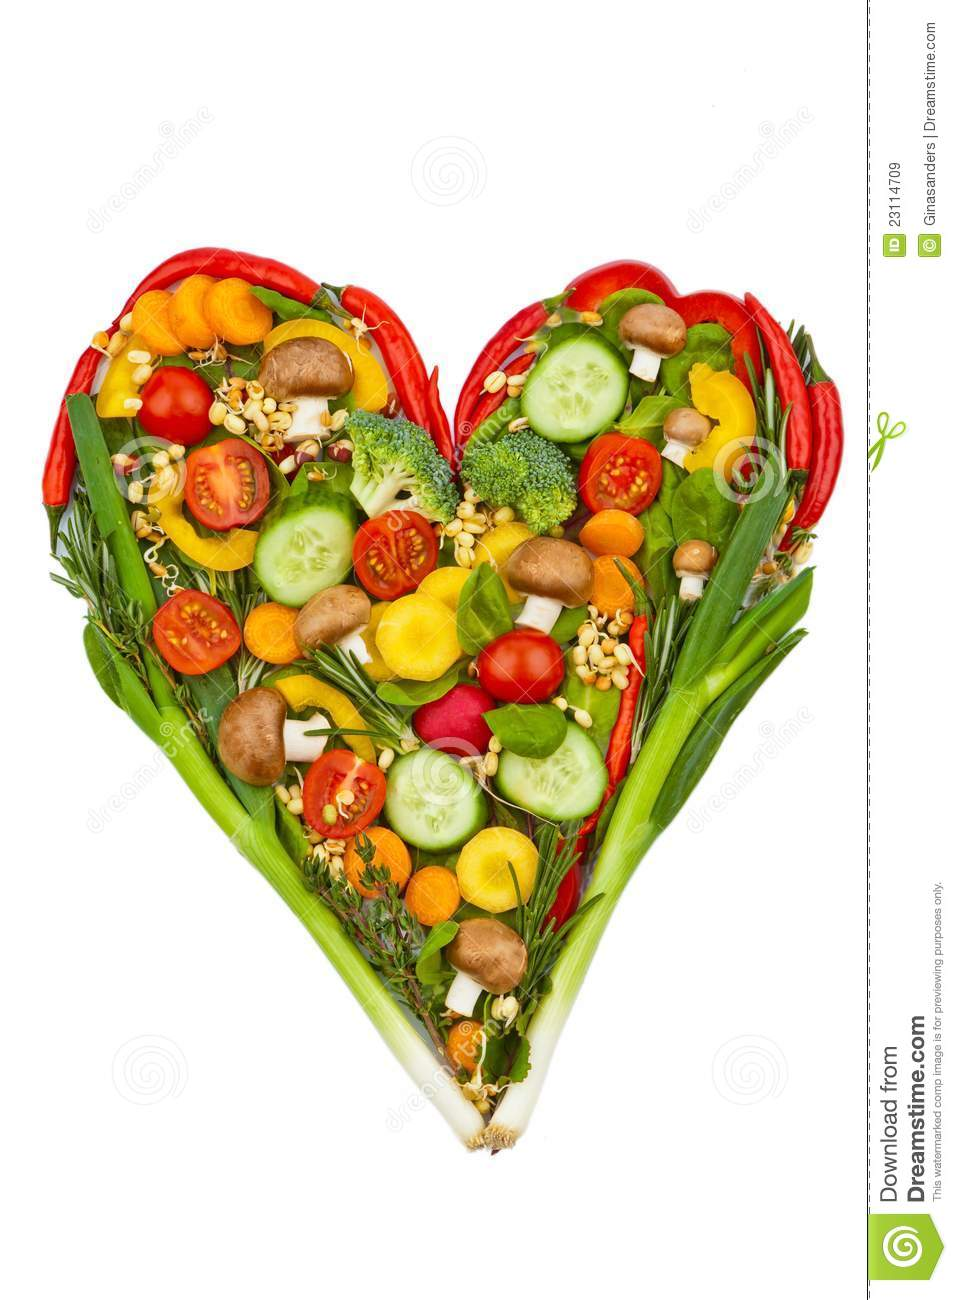 A Heart Made Of Vegetables. Healthy Eating Royalty Free ...